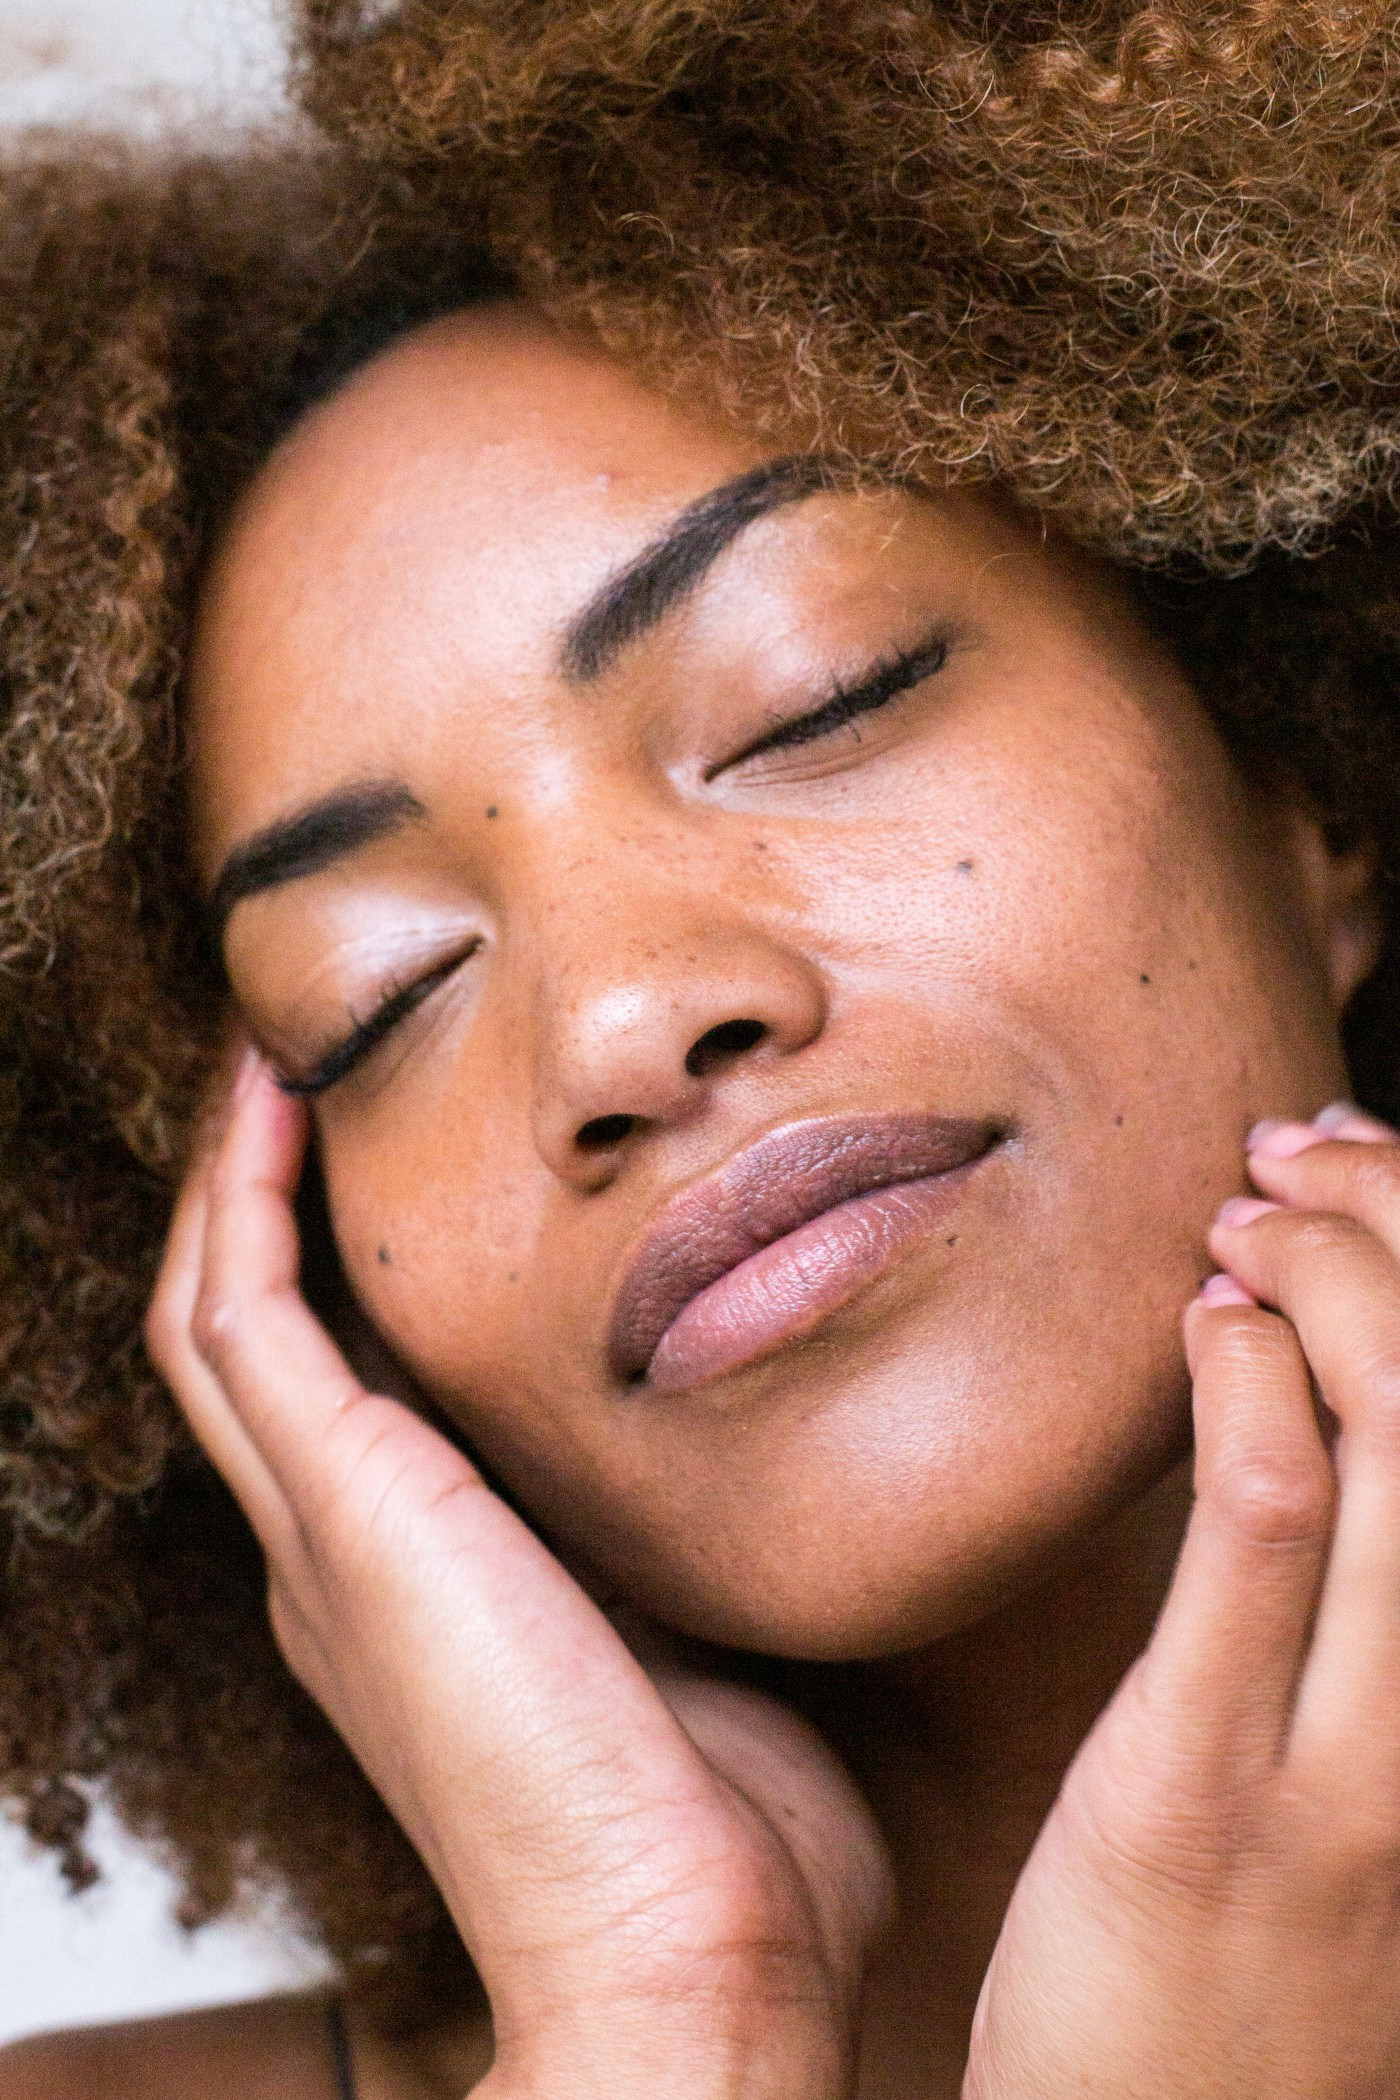 Skin tags can be removed from around the face and eyelids.